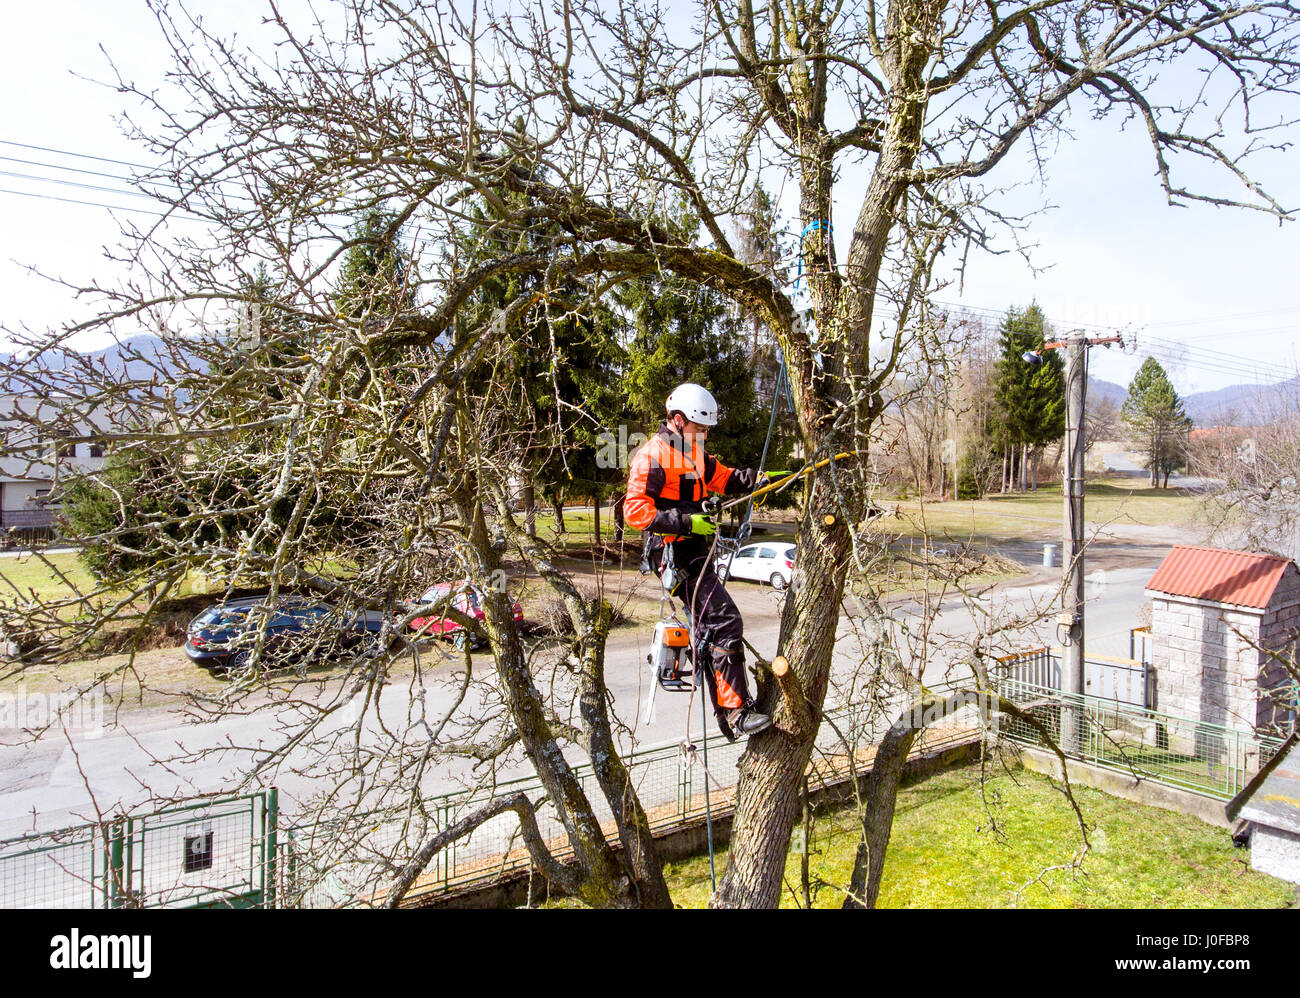 Lumberjack with a saw and harness for pruning a tree. A tree surgeon, arborist climbing a tree in order to reduce - Stock Image